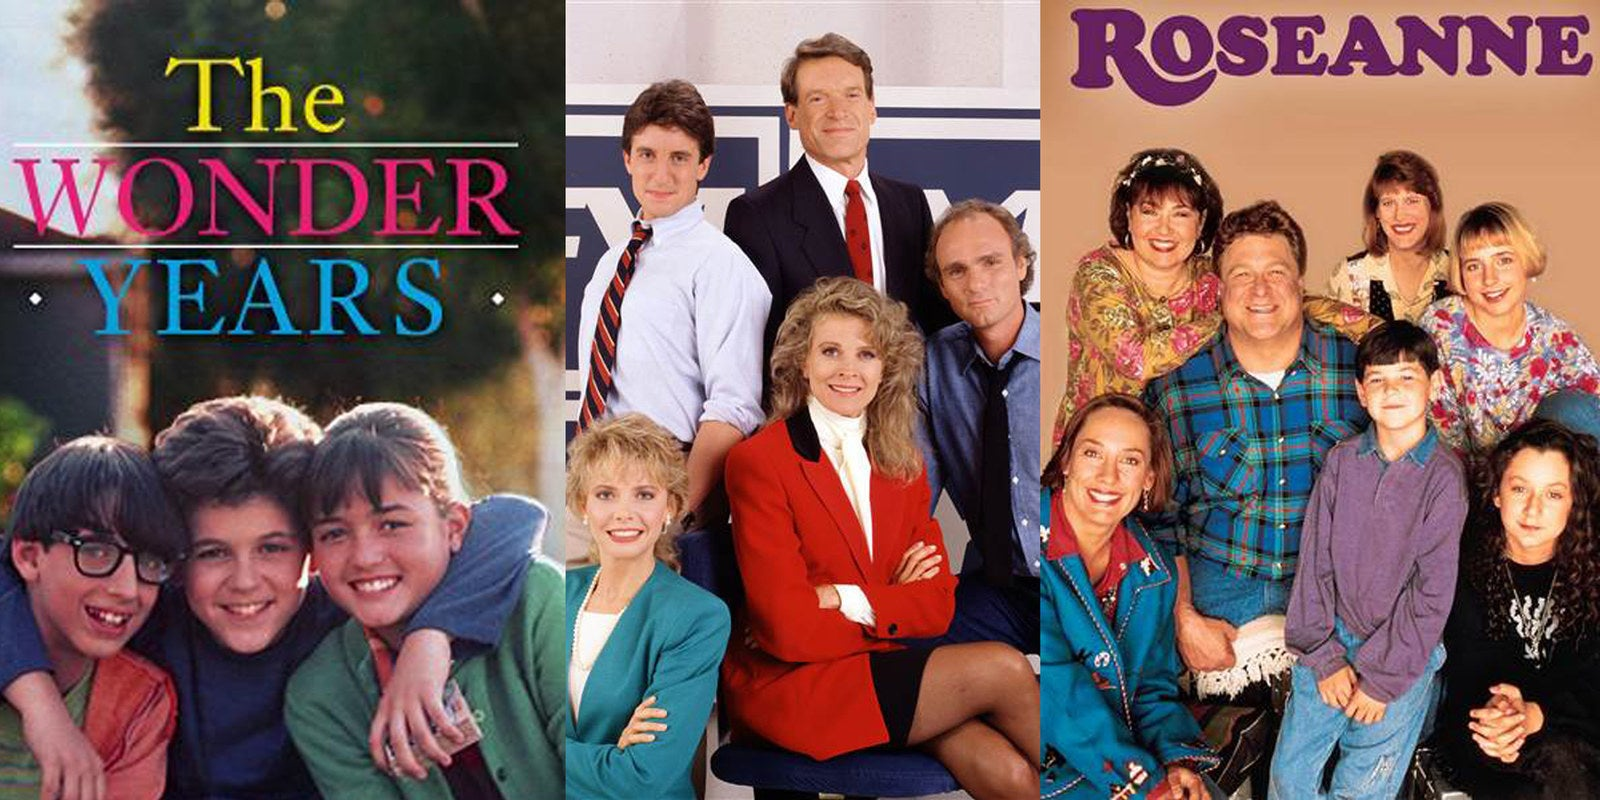 The Wonder Years, Murphy Brown, and Roseanne all made their series debut.